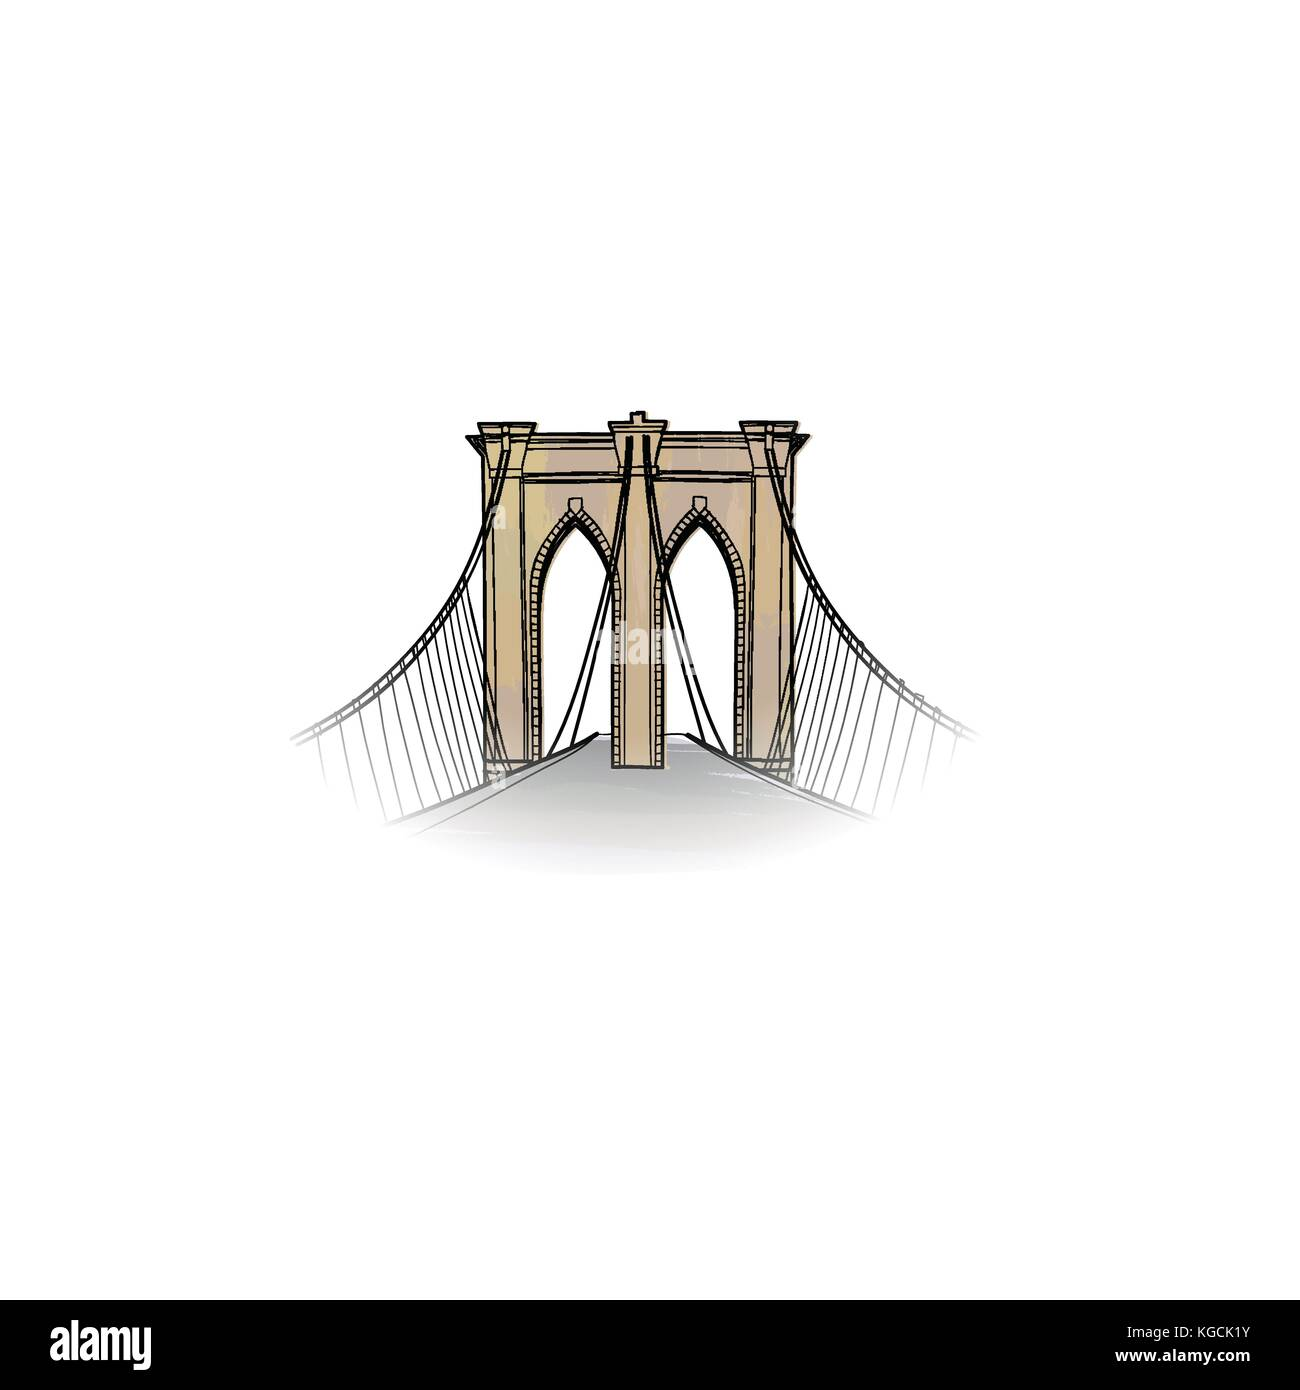 New-York city sign. Travel NYC icon. American landmark Brooklyn bridge view - Stock Vector